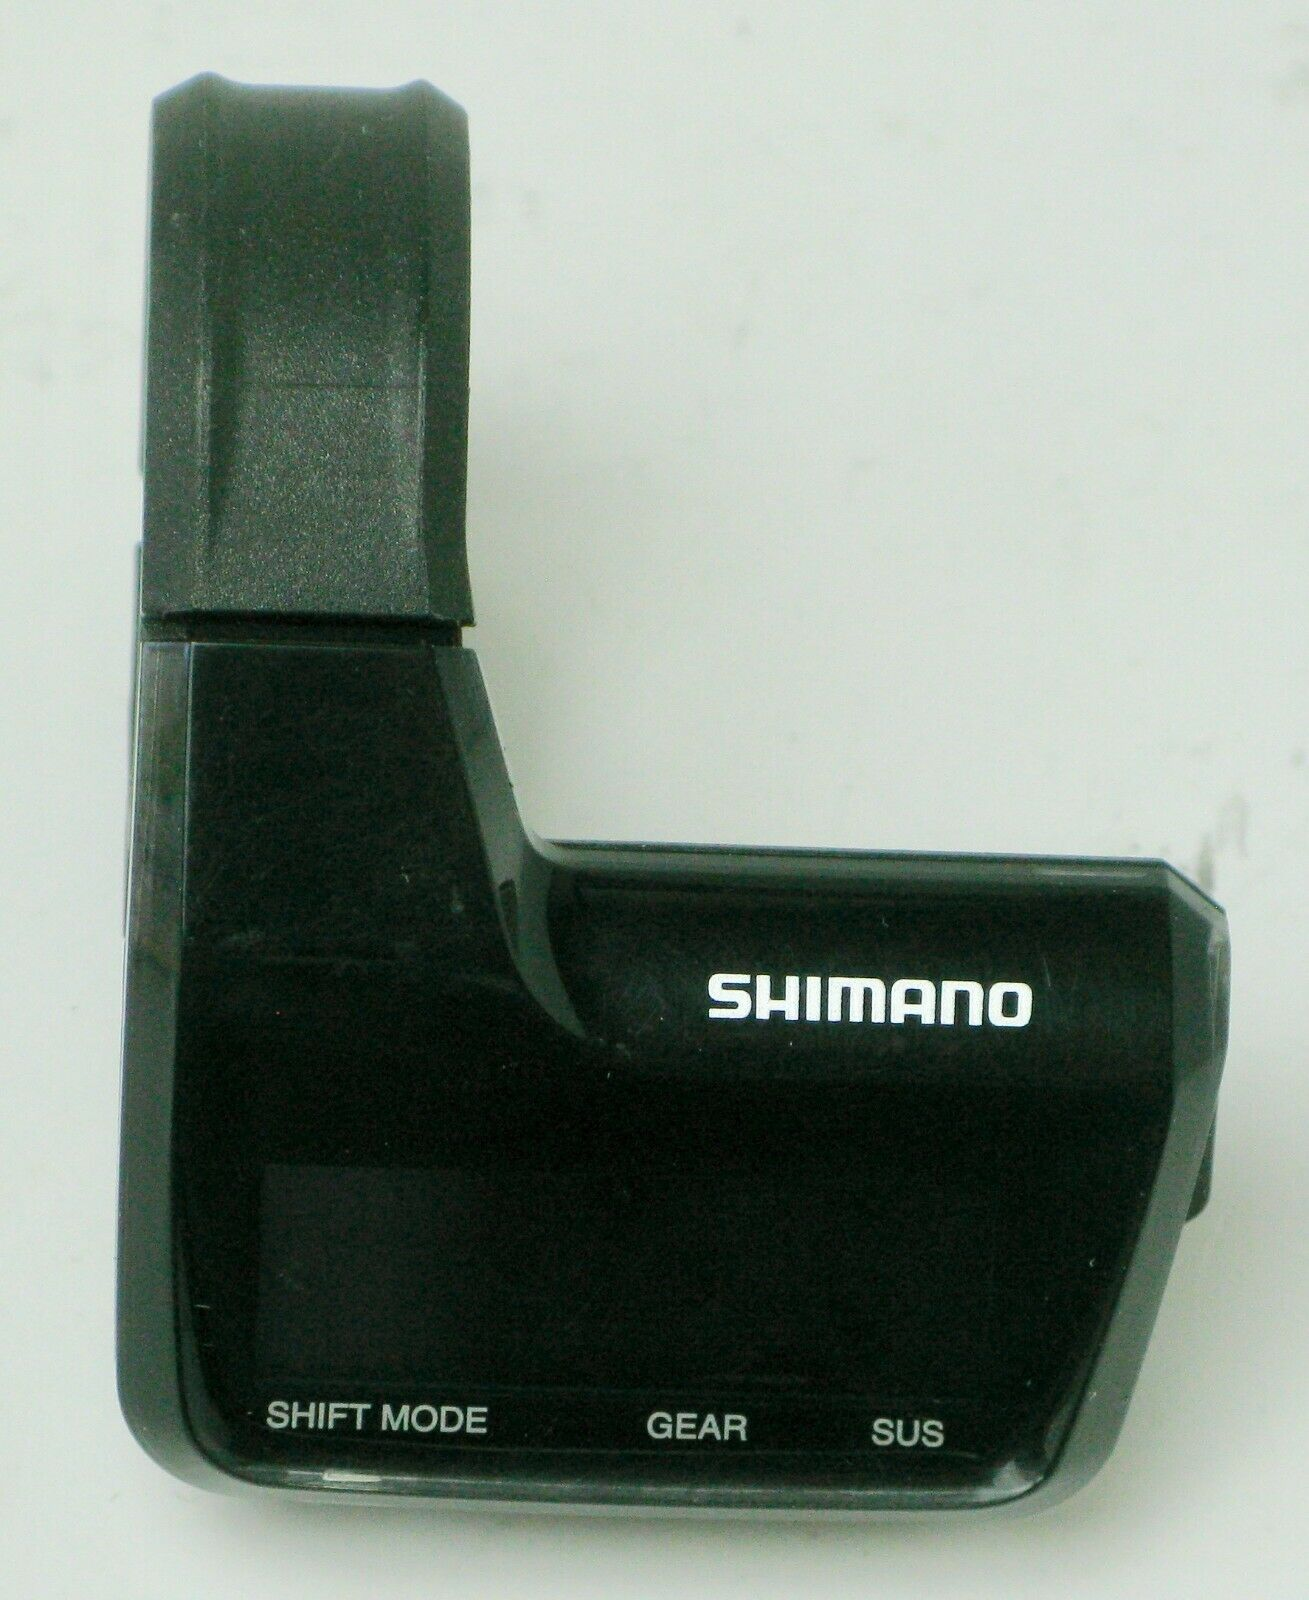 Shimano Di2 SCMT800 System Information Display Unit, 3 ETube  1 Charging Port